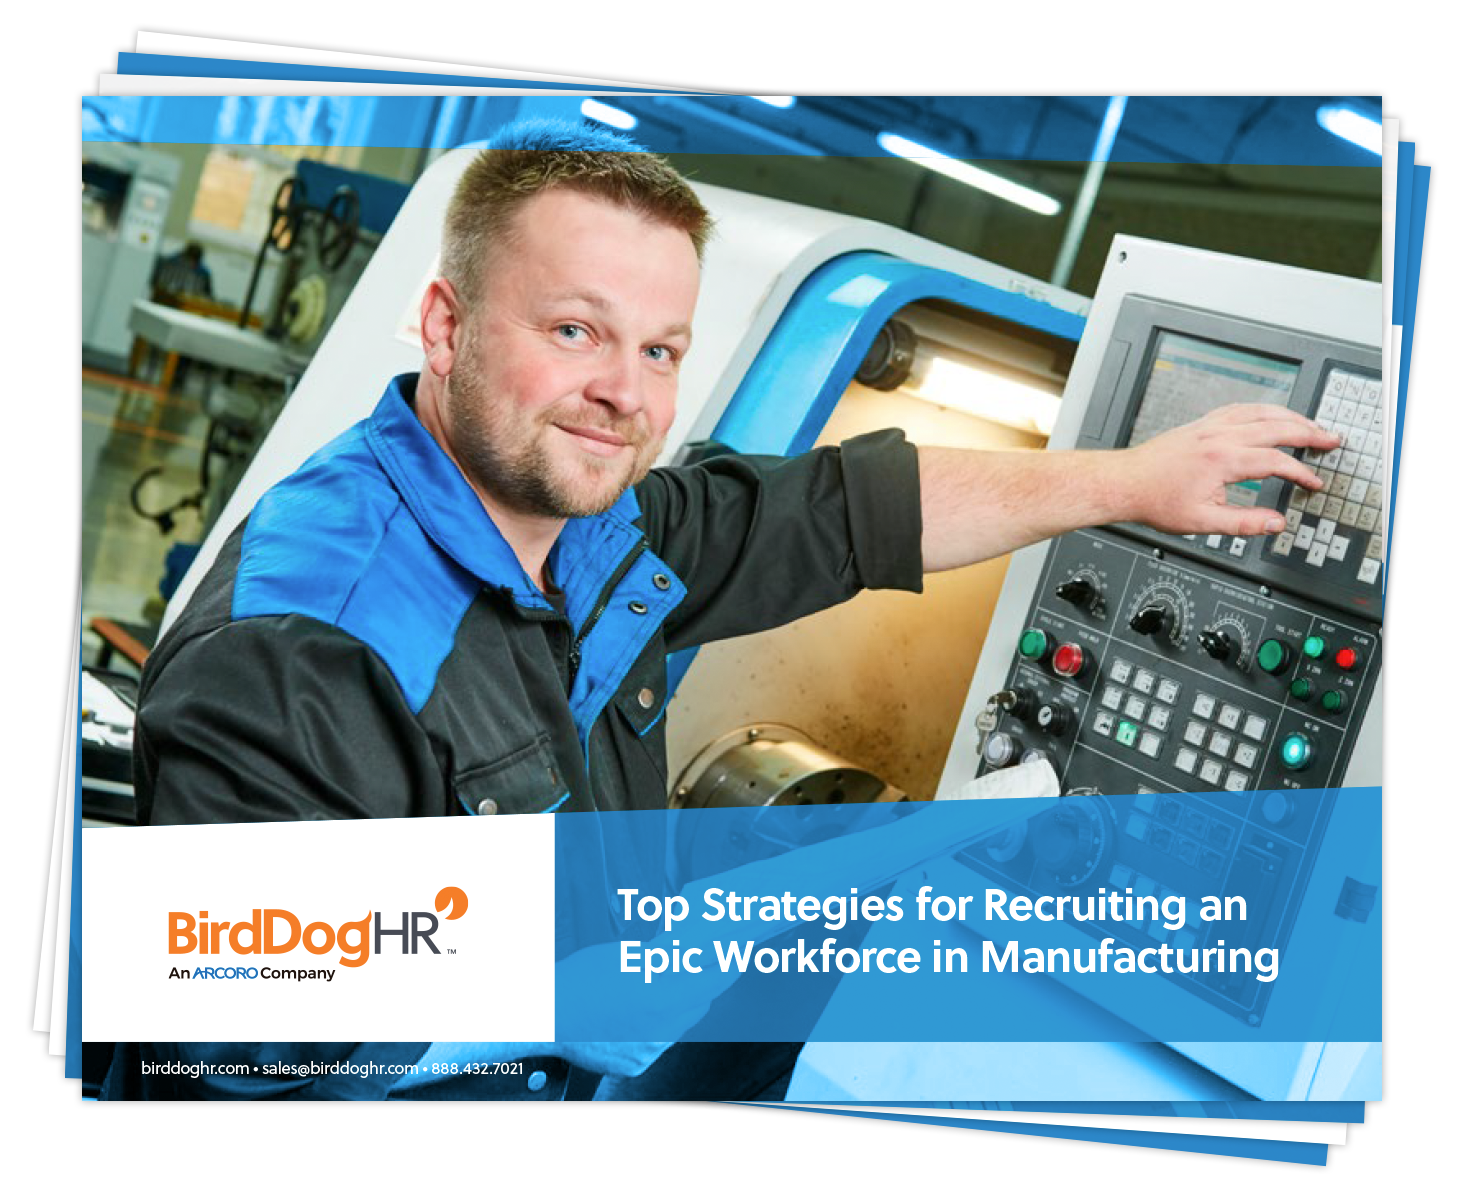 Top Strategies for Recruiting an Epic Workforce in Manufacturing whitepaper